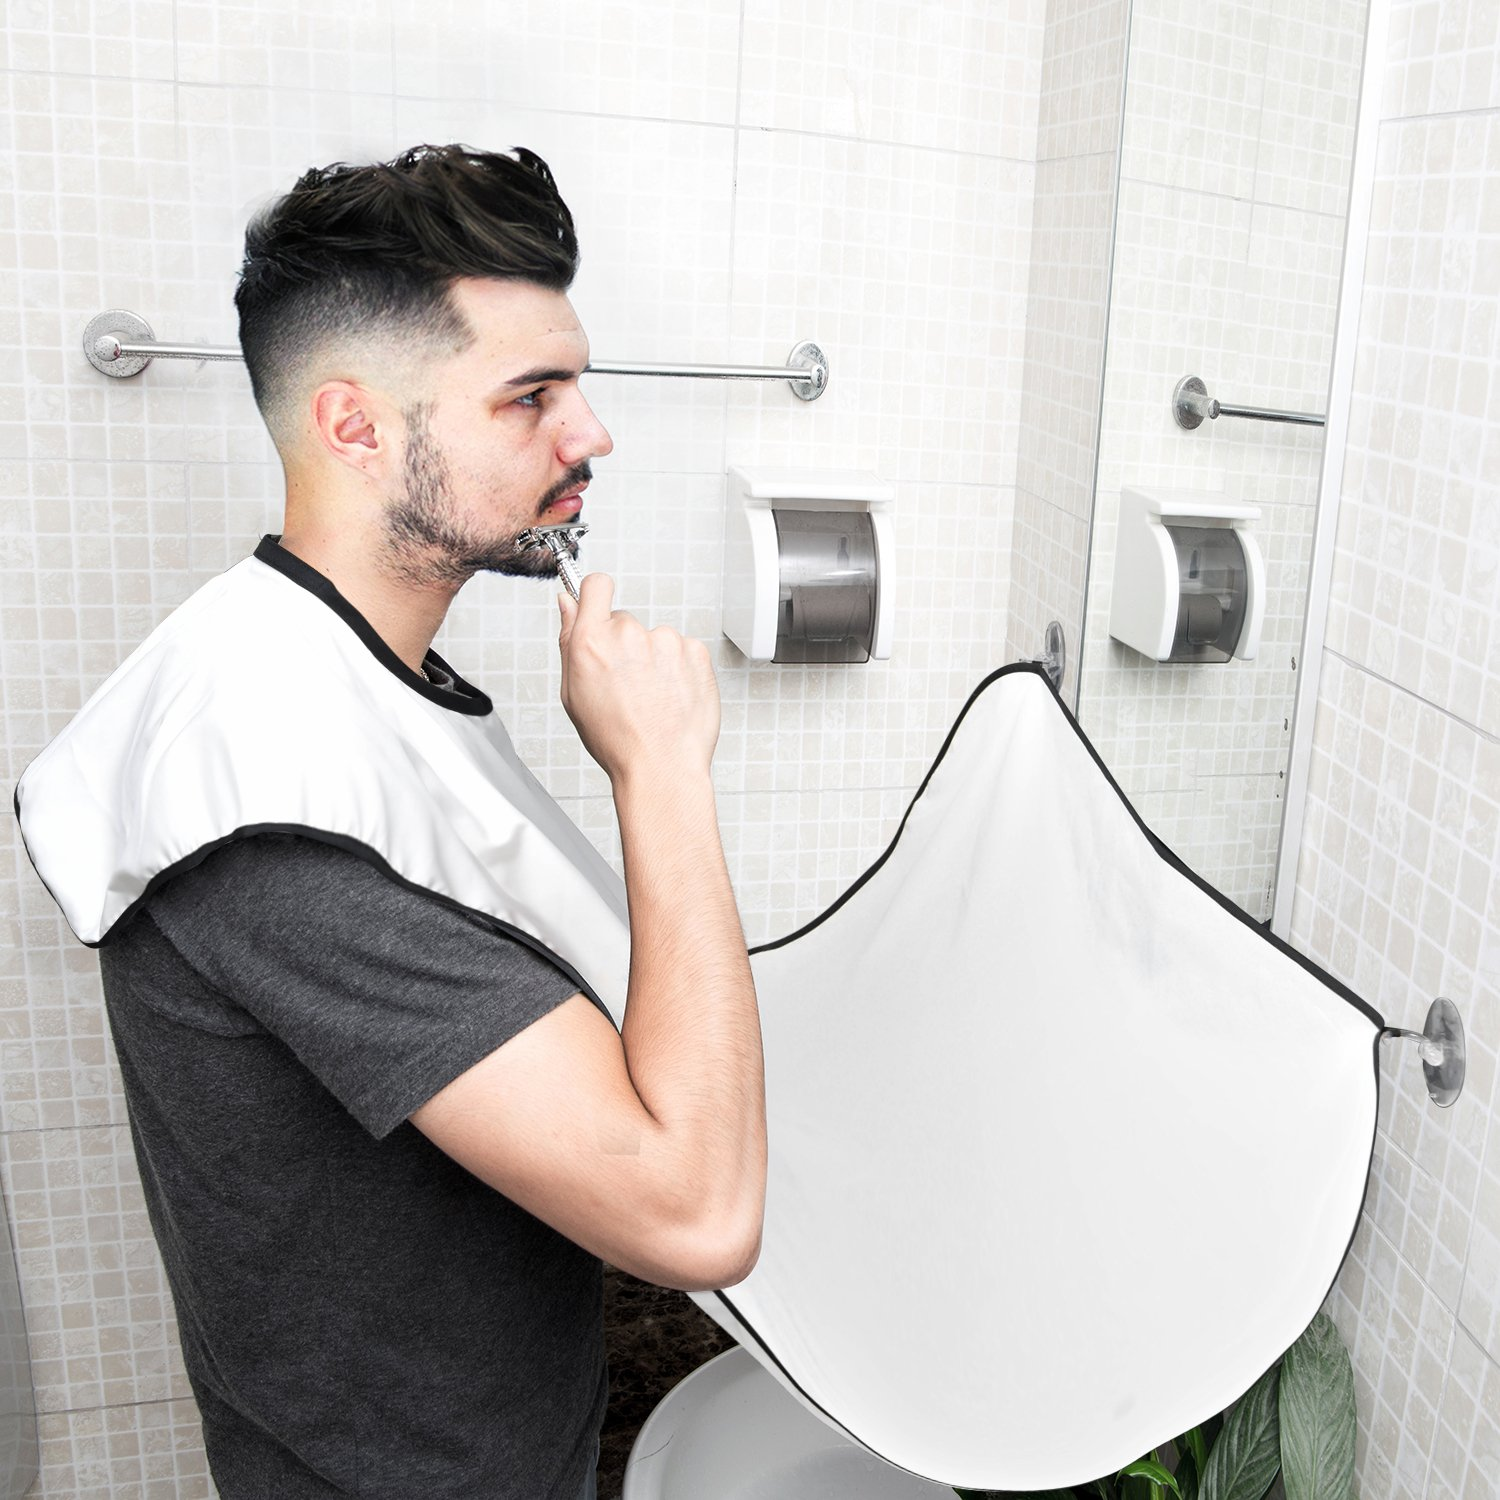 Beard Bib, TASEYAR Beard Shaving Apron with 2 Suction Cups to Mirror for Men Mustache Shaving Grooming Trimming Hair Clippings Catcher, Perfect Gift for Men